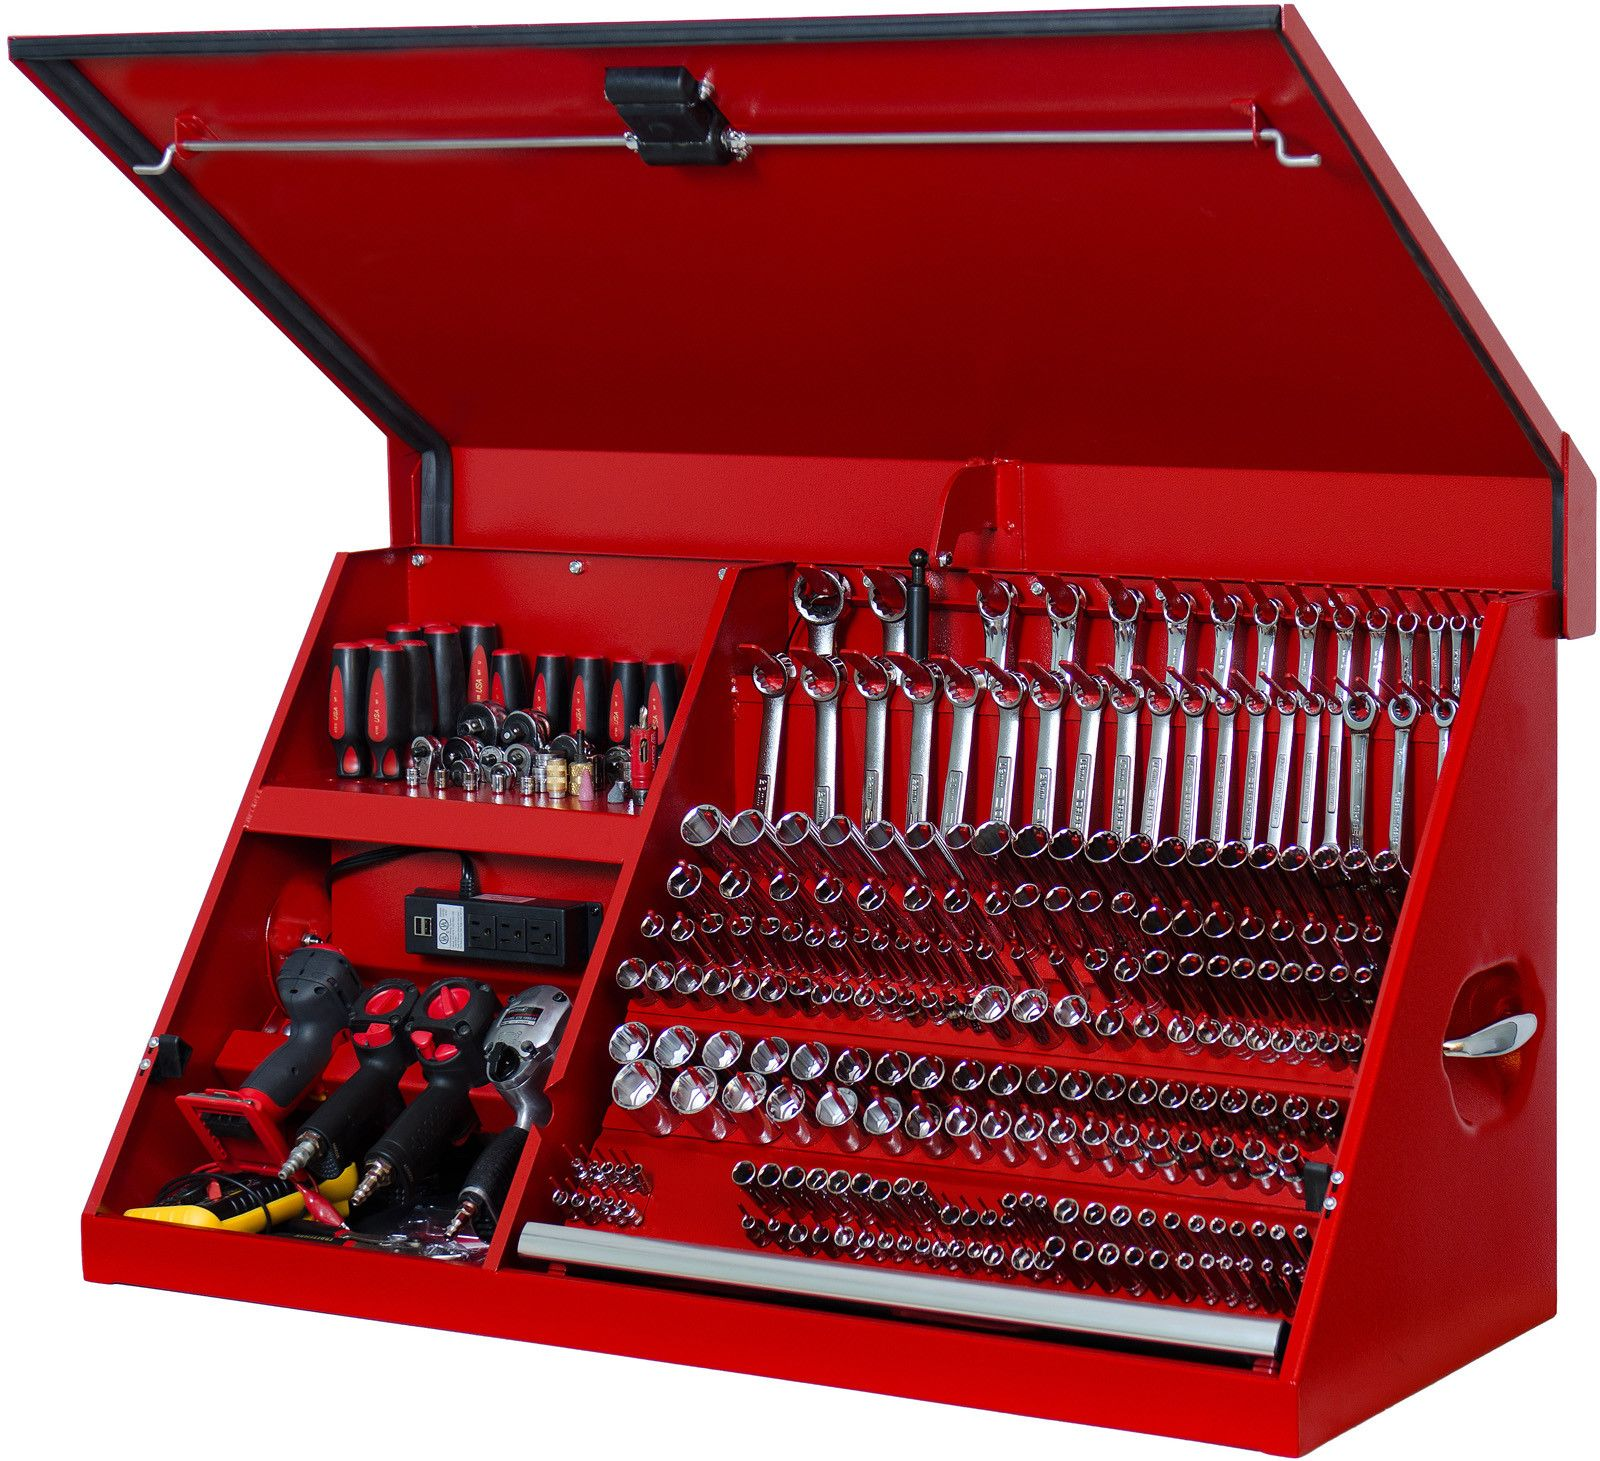 Portable Workstation, Tool Box Storage